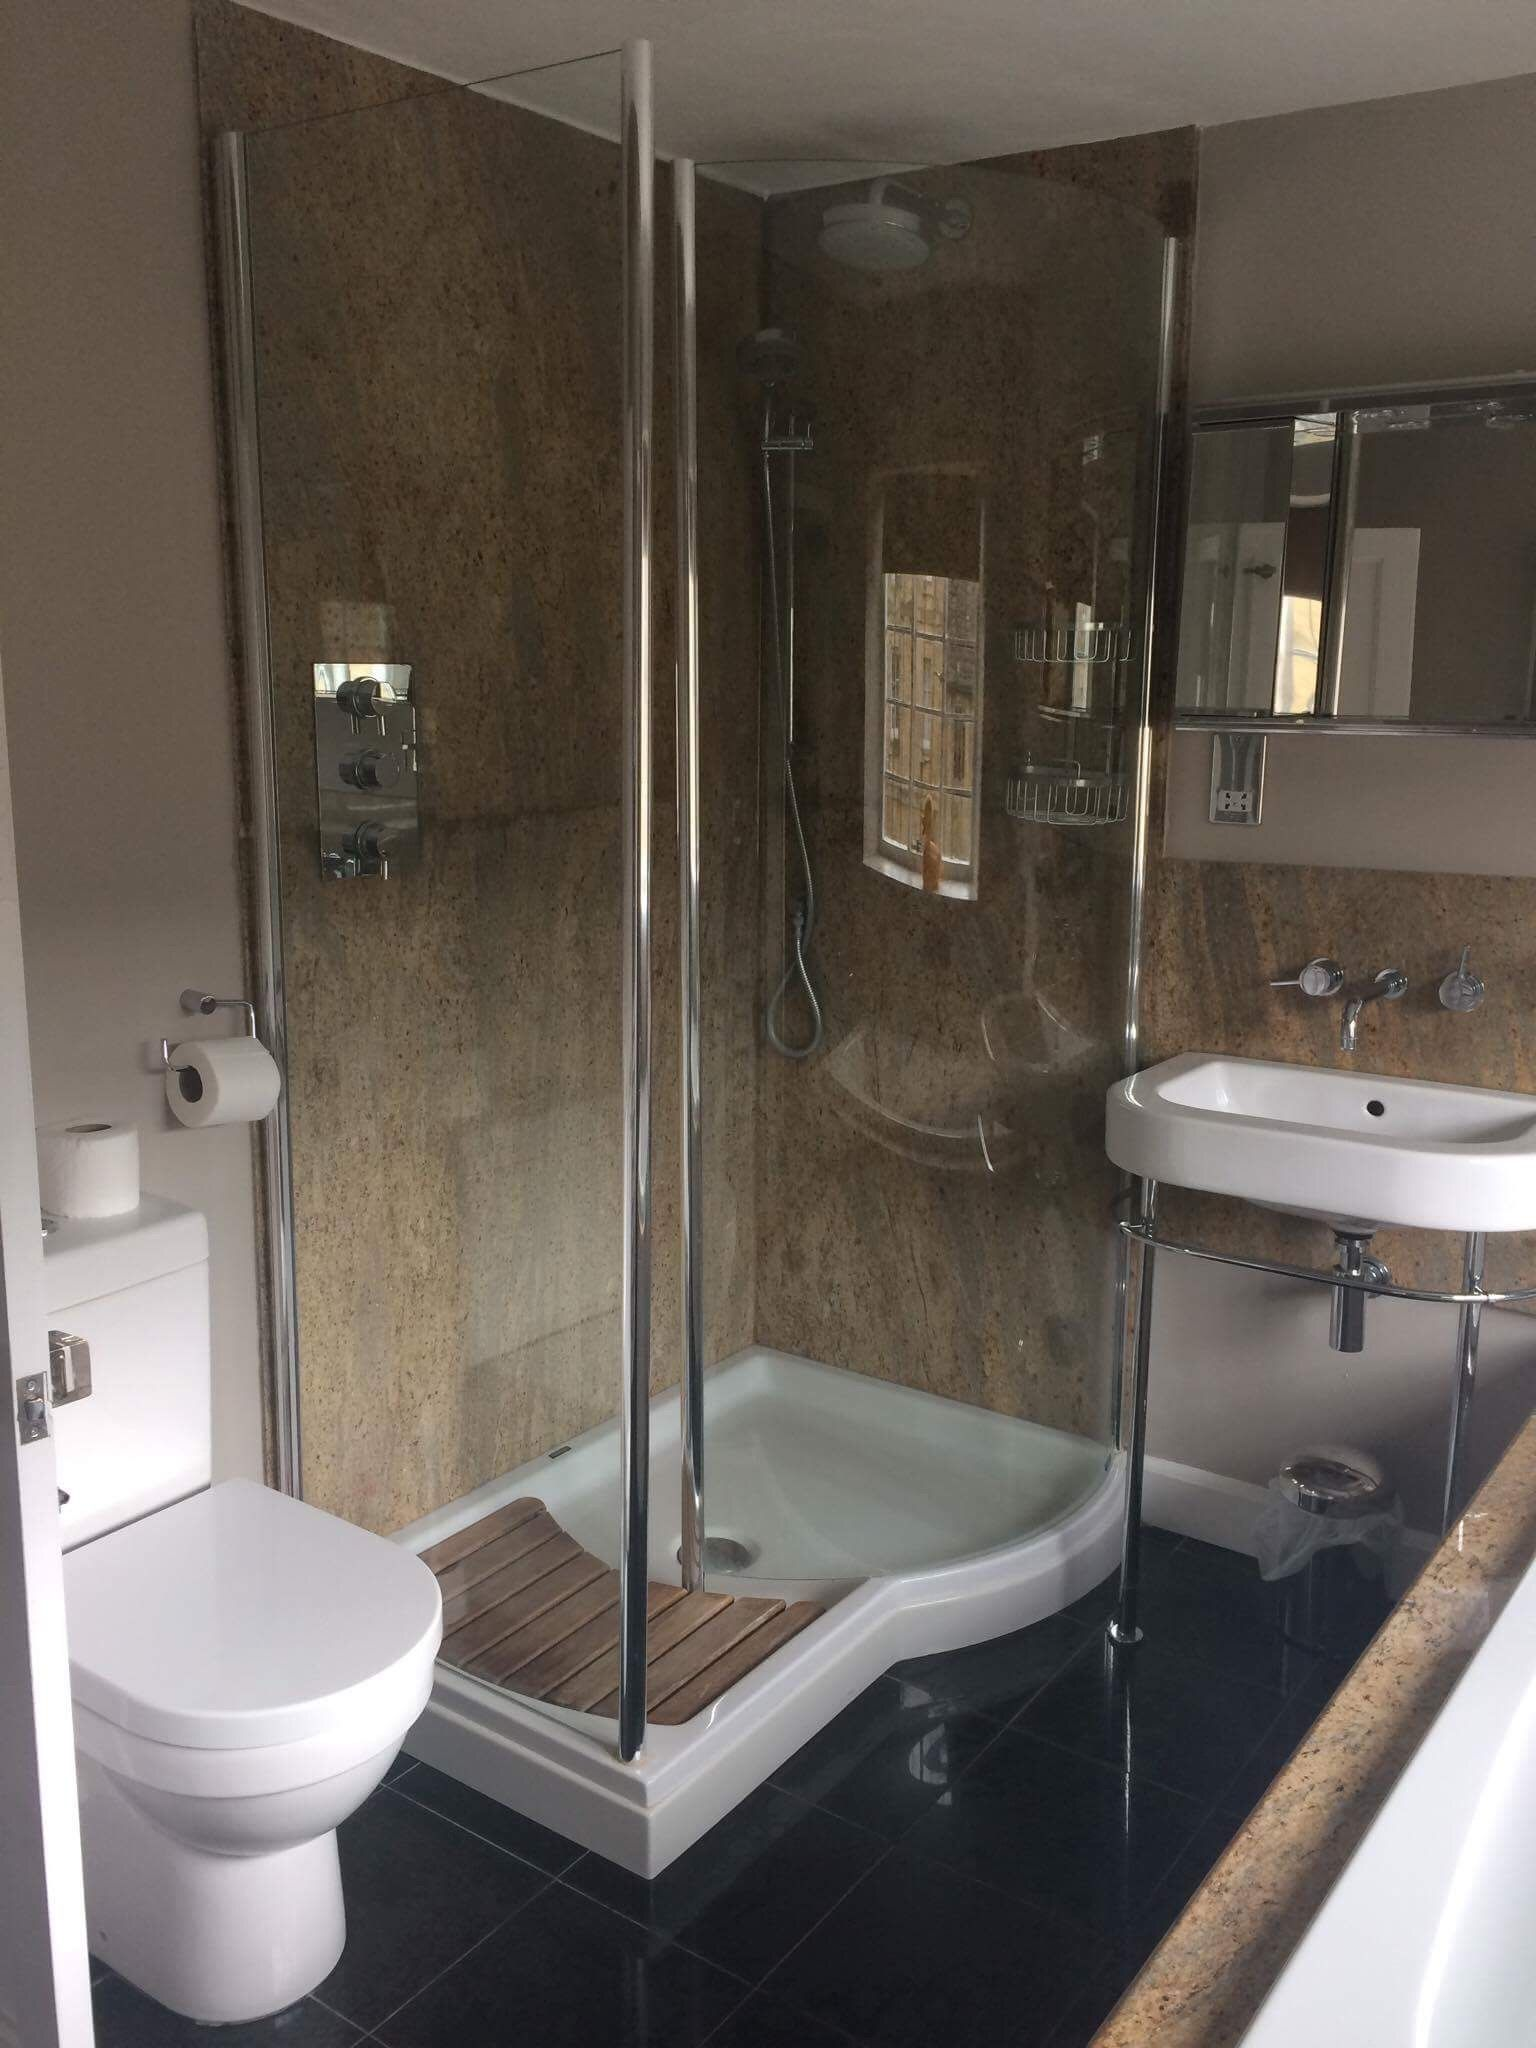 Walk in shower twin basins with vanity cupboard and WC ensuite